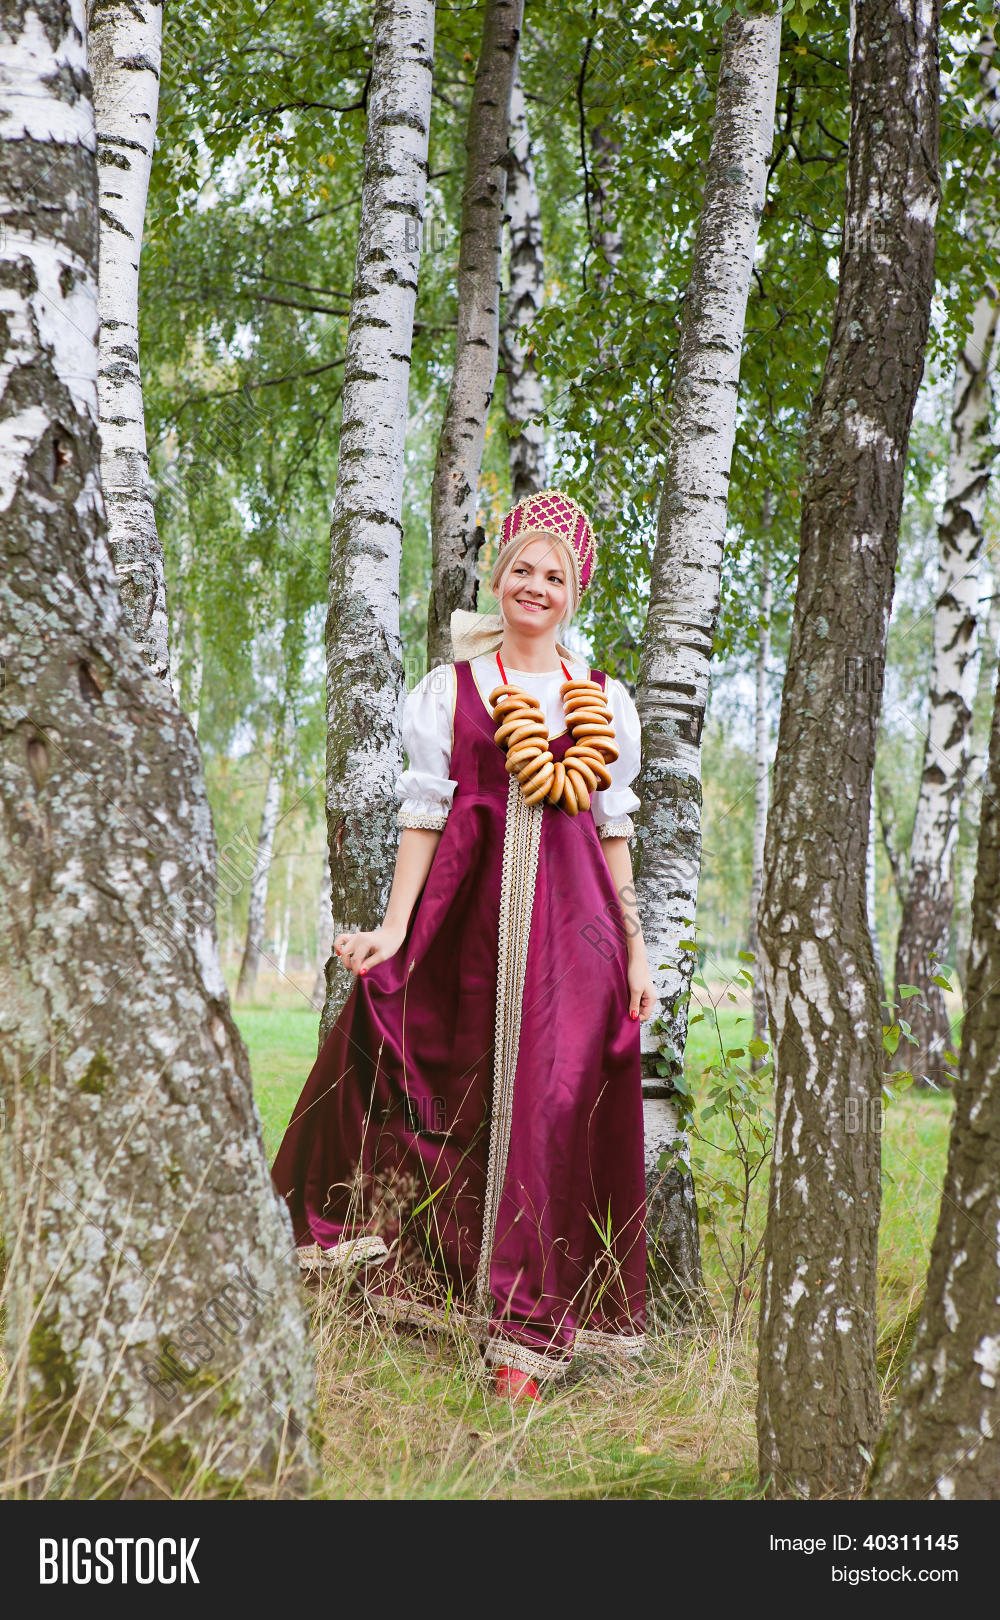 19th,20s,adults,background,beautiful,beauty,birch,bread-ring,caucasian,cheerful,clothing,color,costume,culture,dress,elegance,ethnicity,fashion,female,femininity,forest,garment,girl,happiness,hat,headwear,historical,history,isolated,kokoshnik,old-fashioned,period,person,plait,portrait,red,retro,russia,russian,sarafan,skirt,smiling,standing,style,traditional,wear,woman,years,young